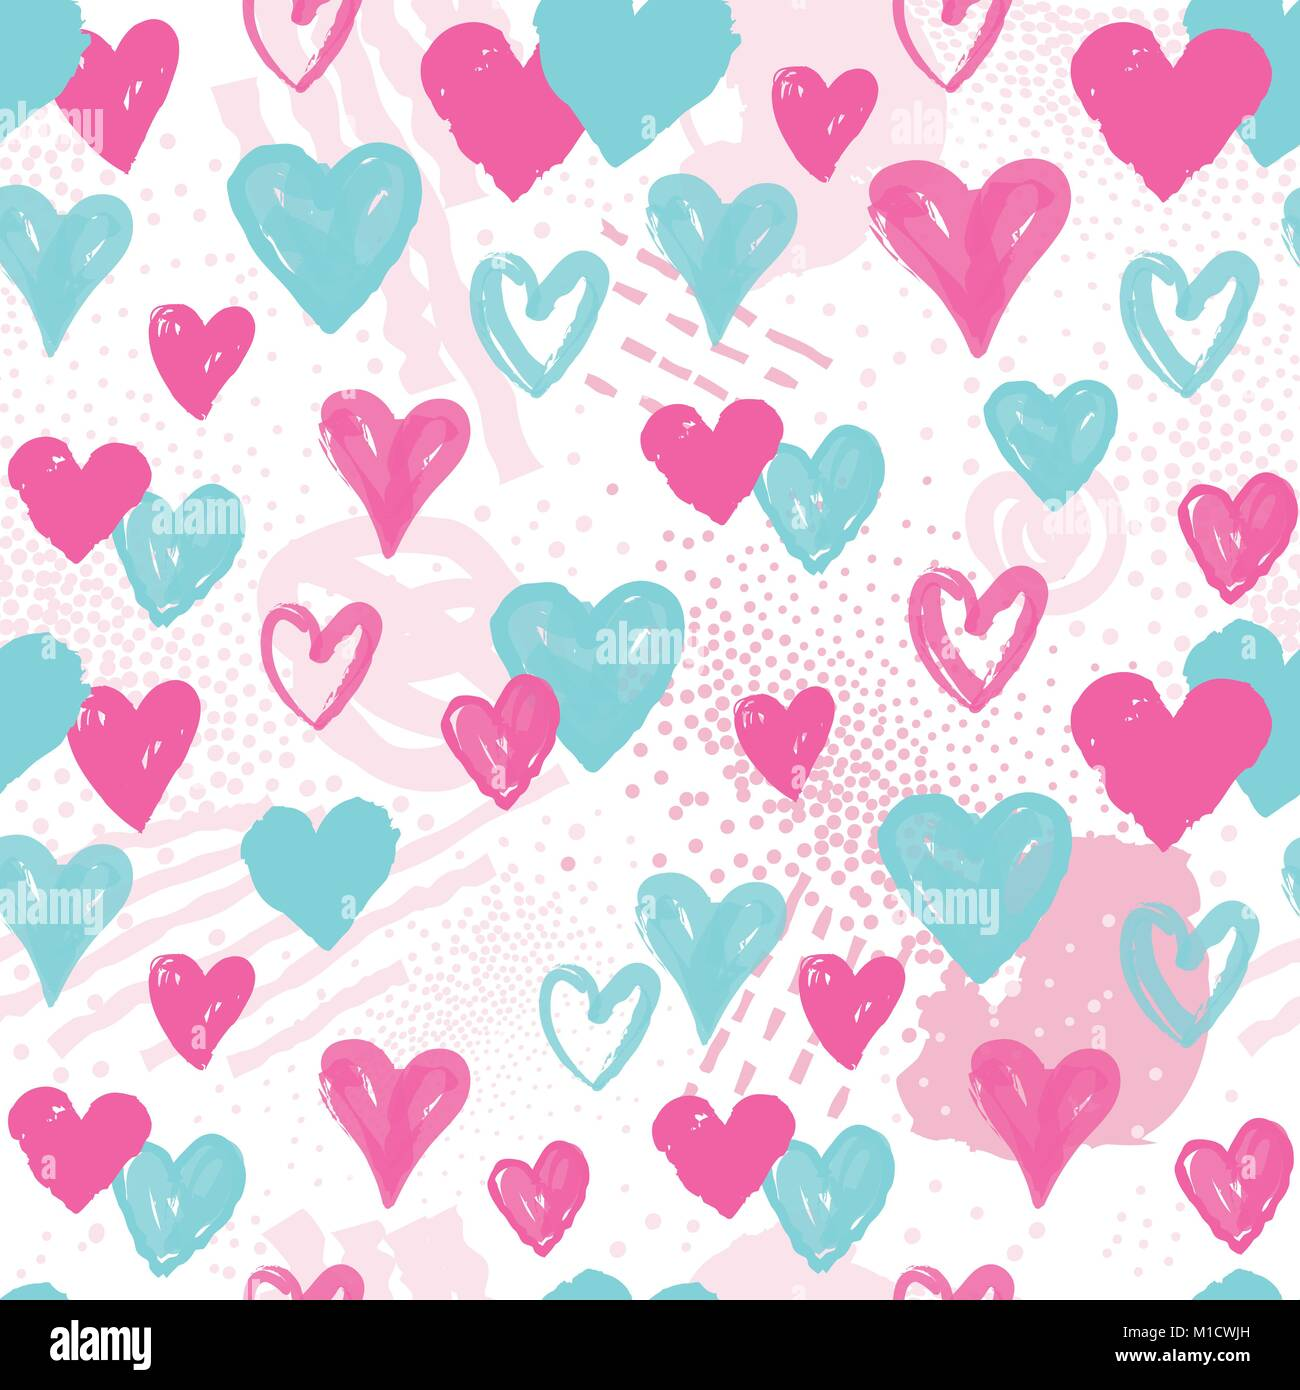 Love Heart Seamless Pattern Abstract Valentine Day Hand Drawn Background Holiday Ornamental Wallpaper